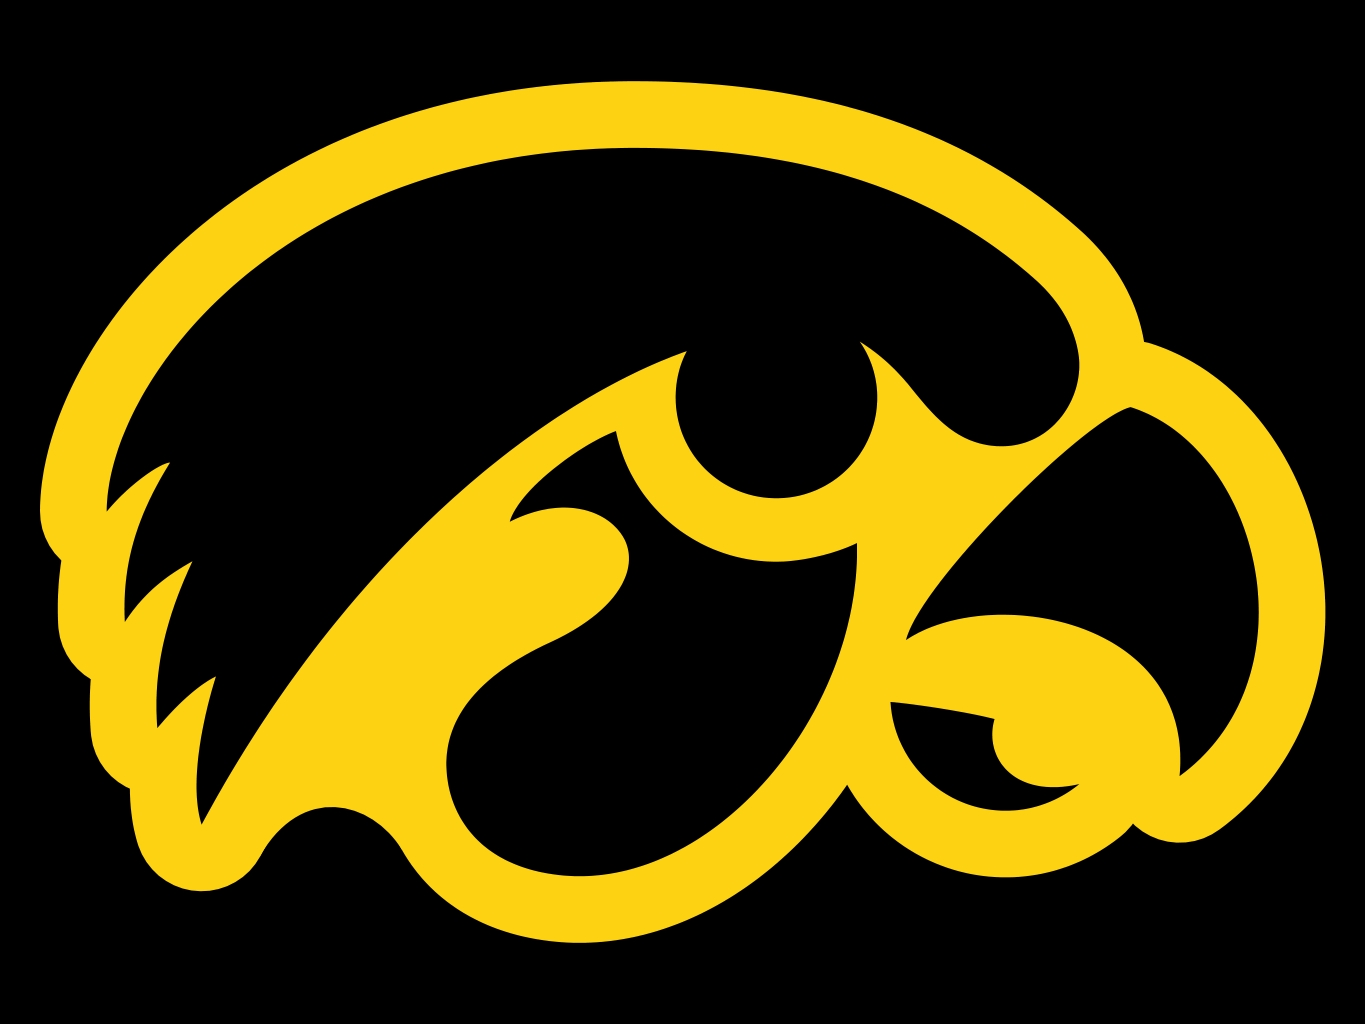 Free Iowa Hawkeyes Wallpaper - WallpaperSafari